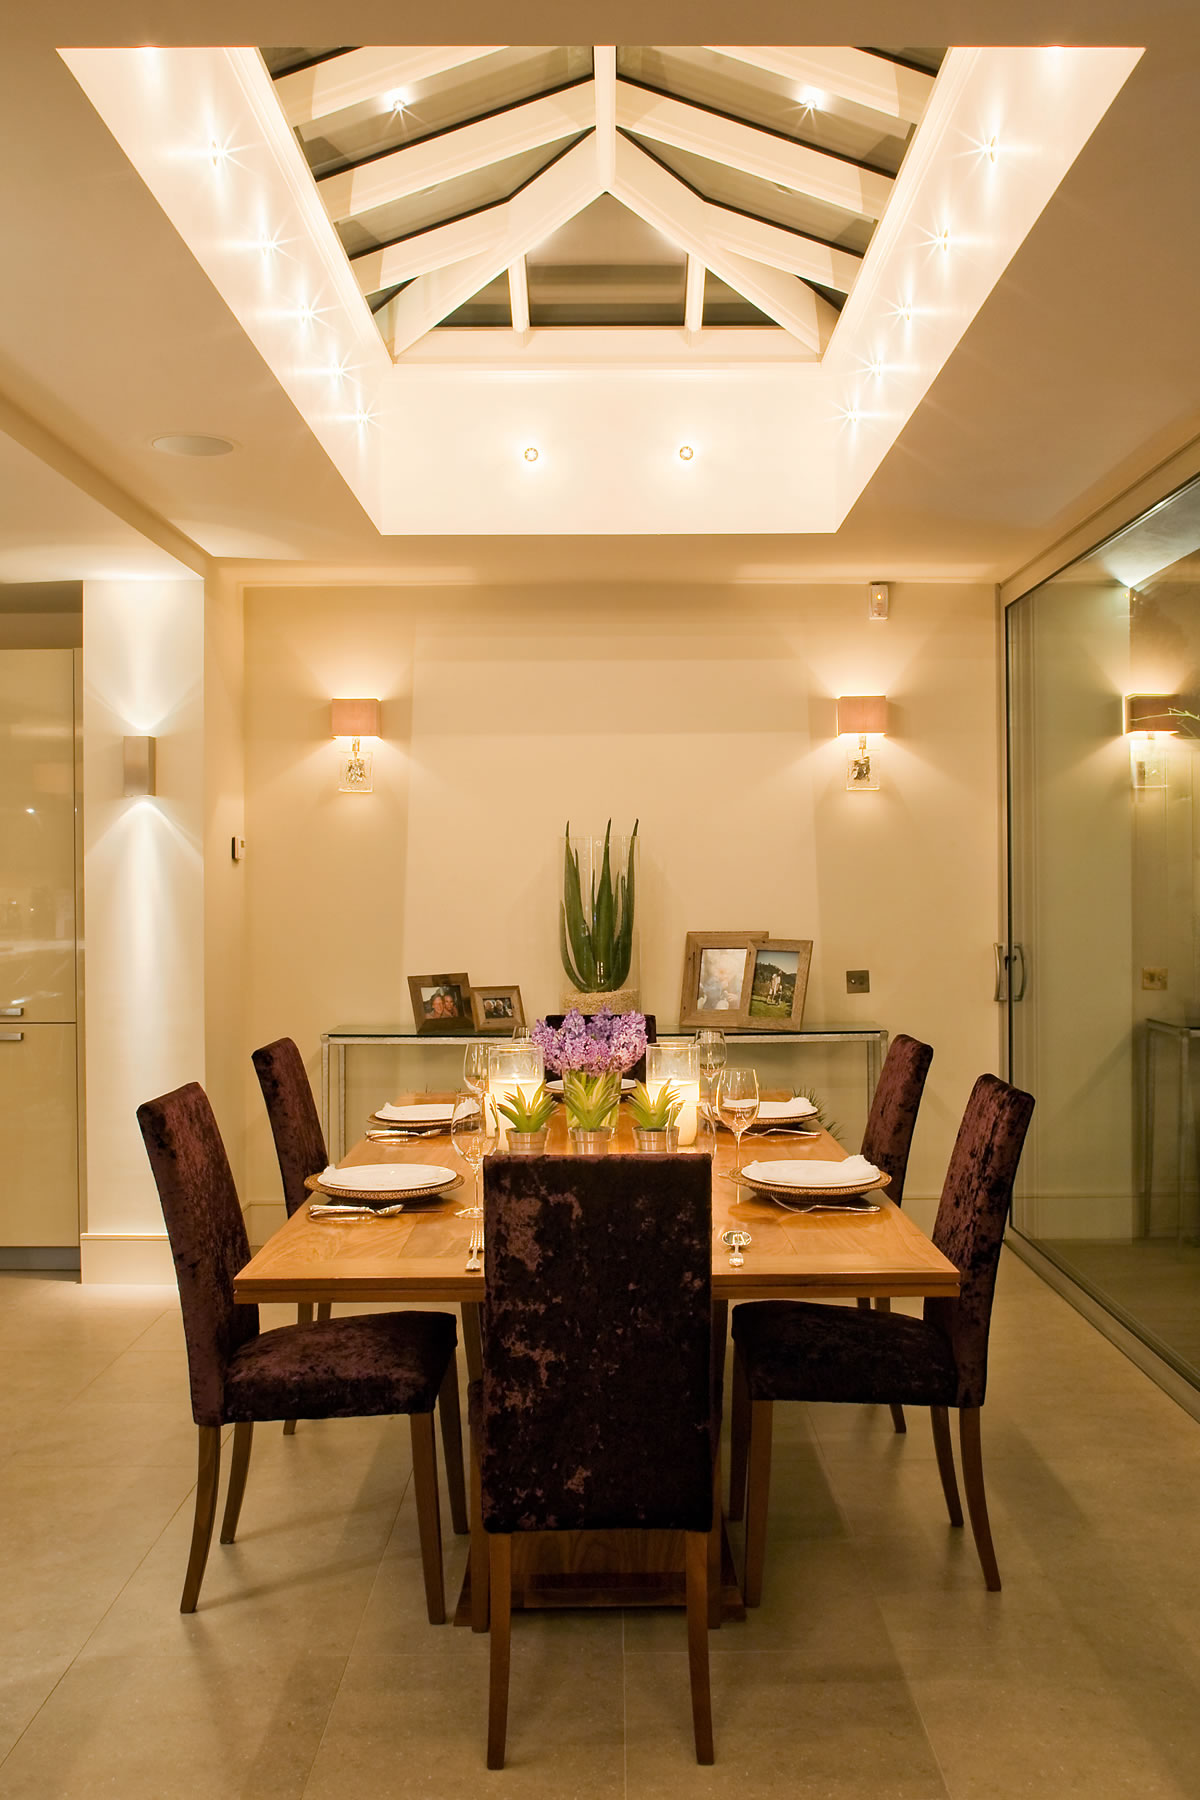 Featured Image of Wonderful Dining Room Ceiling Lighting For Modern And Luxury Look